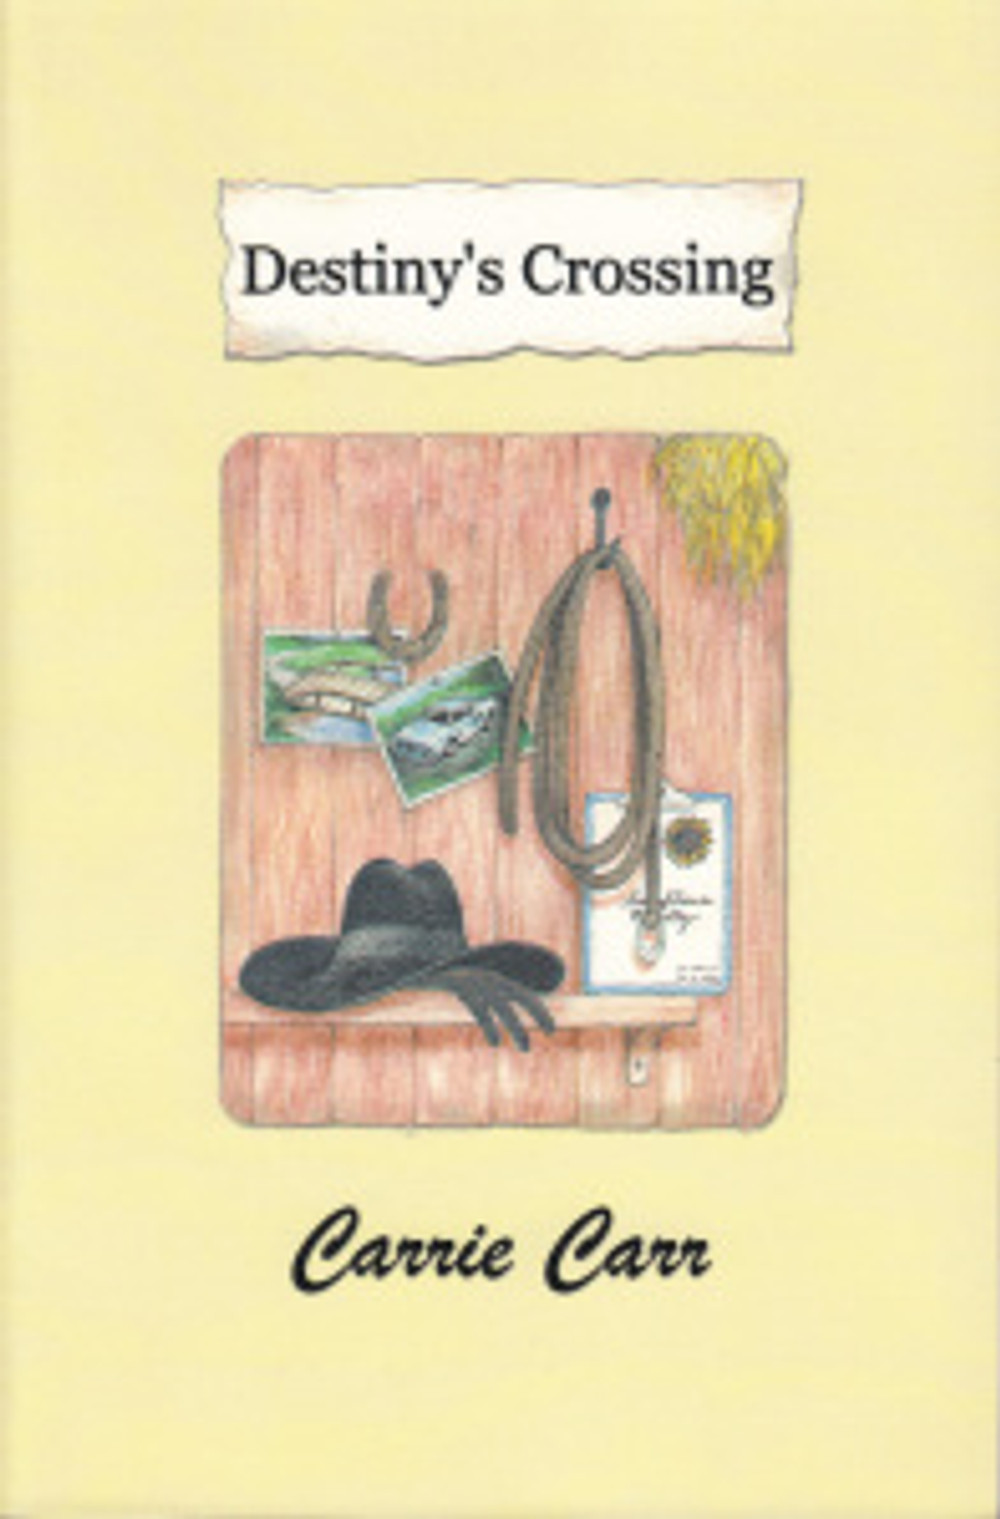 First edition of Destiny's Crossing.